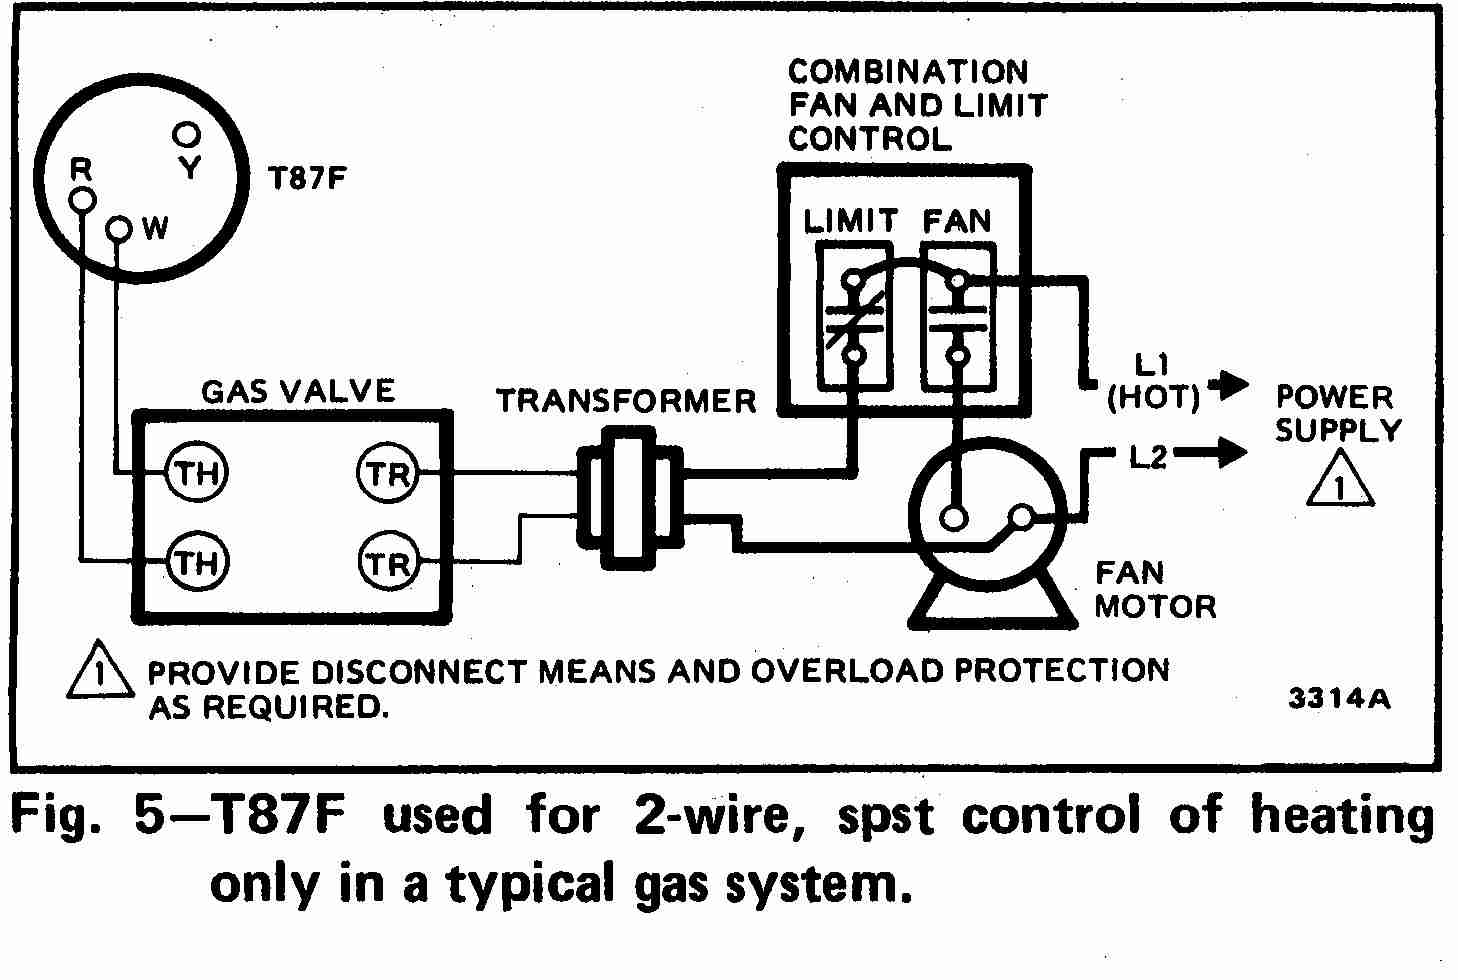 TT_T87F_0002_2Wg_DJF room thermostat wiring diagrams for hvac systems wiring diagram for thermostat at virtualis.co